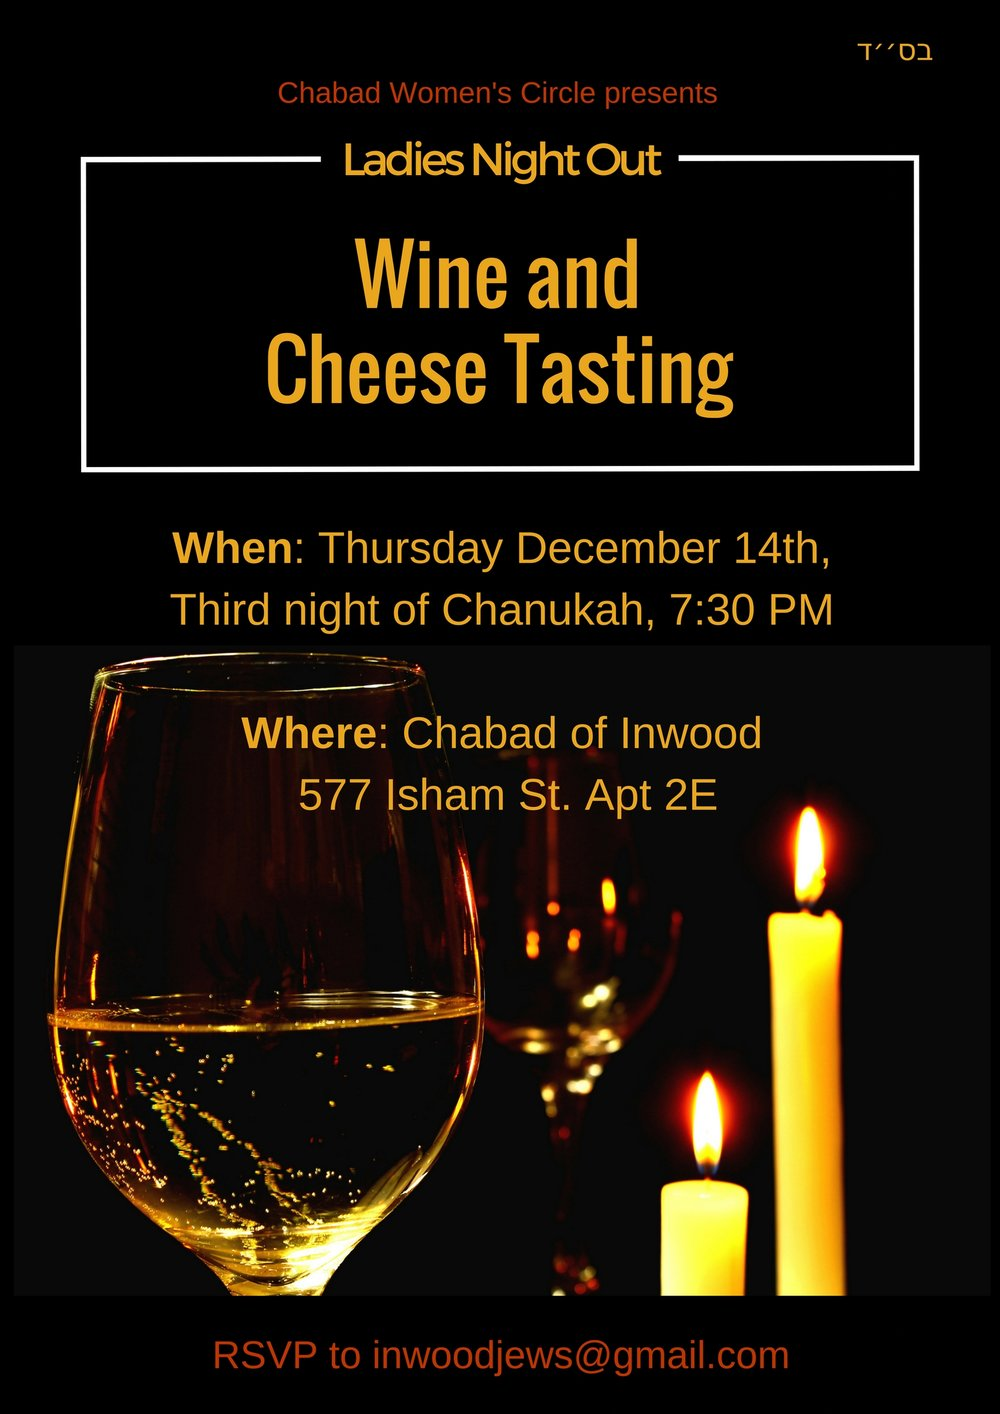 Chanukah StyleWine and Cheese Tasting (2).jpg